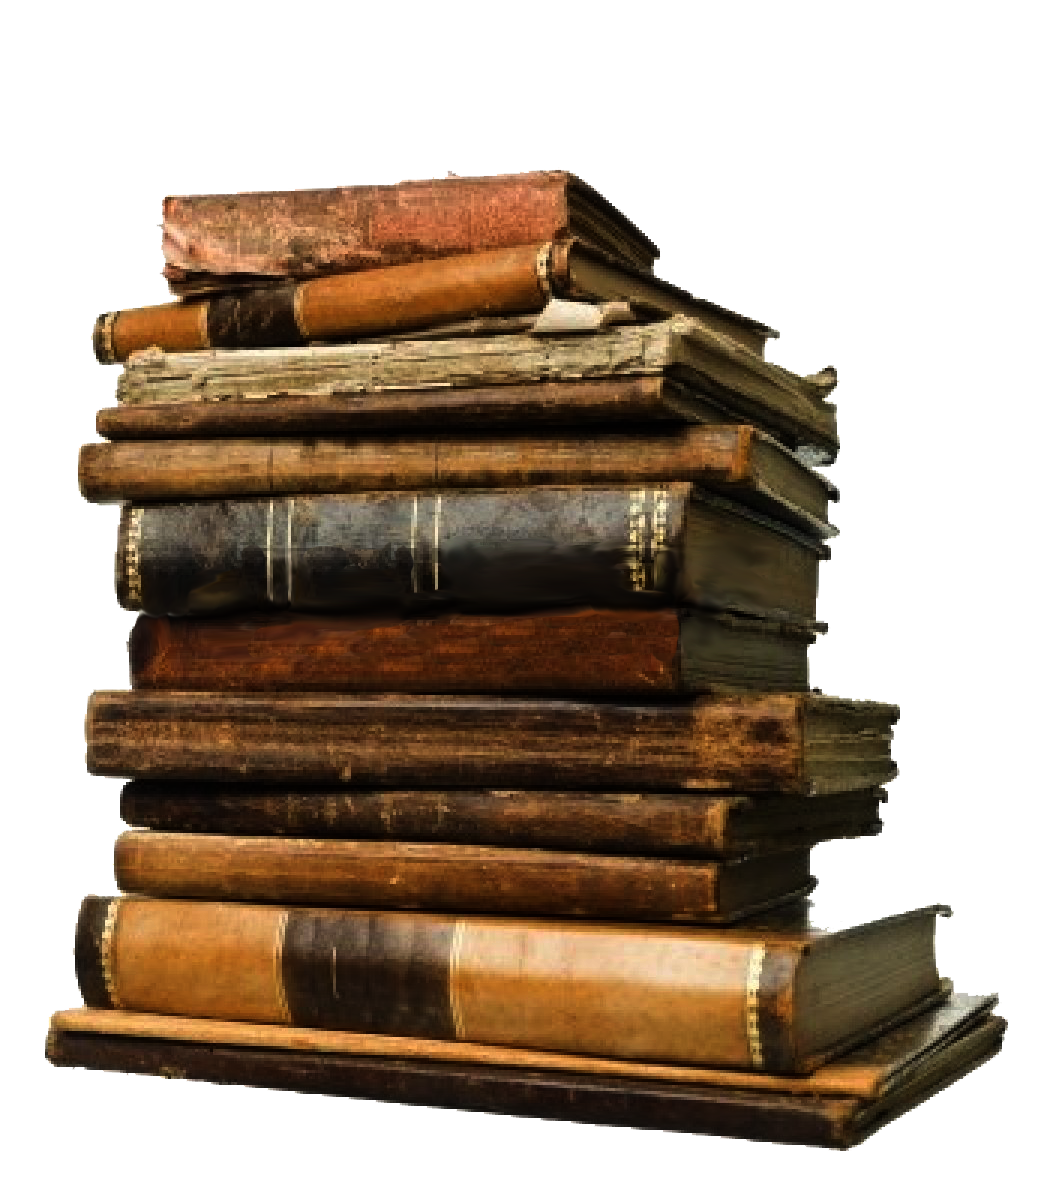 Stack of books png. Old image